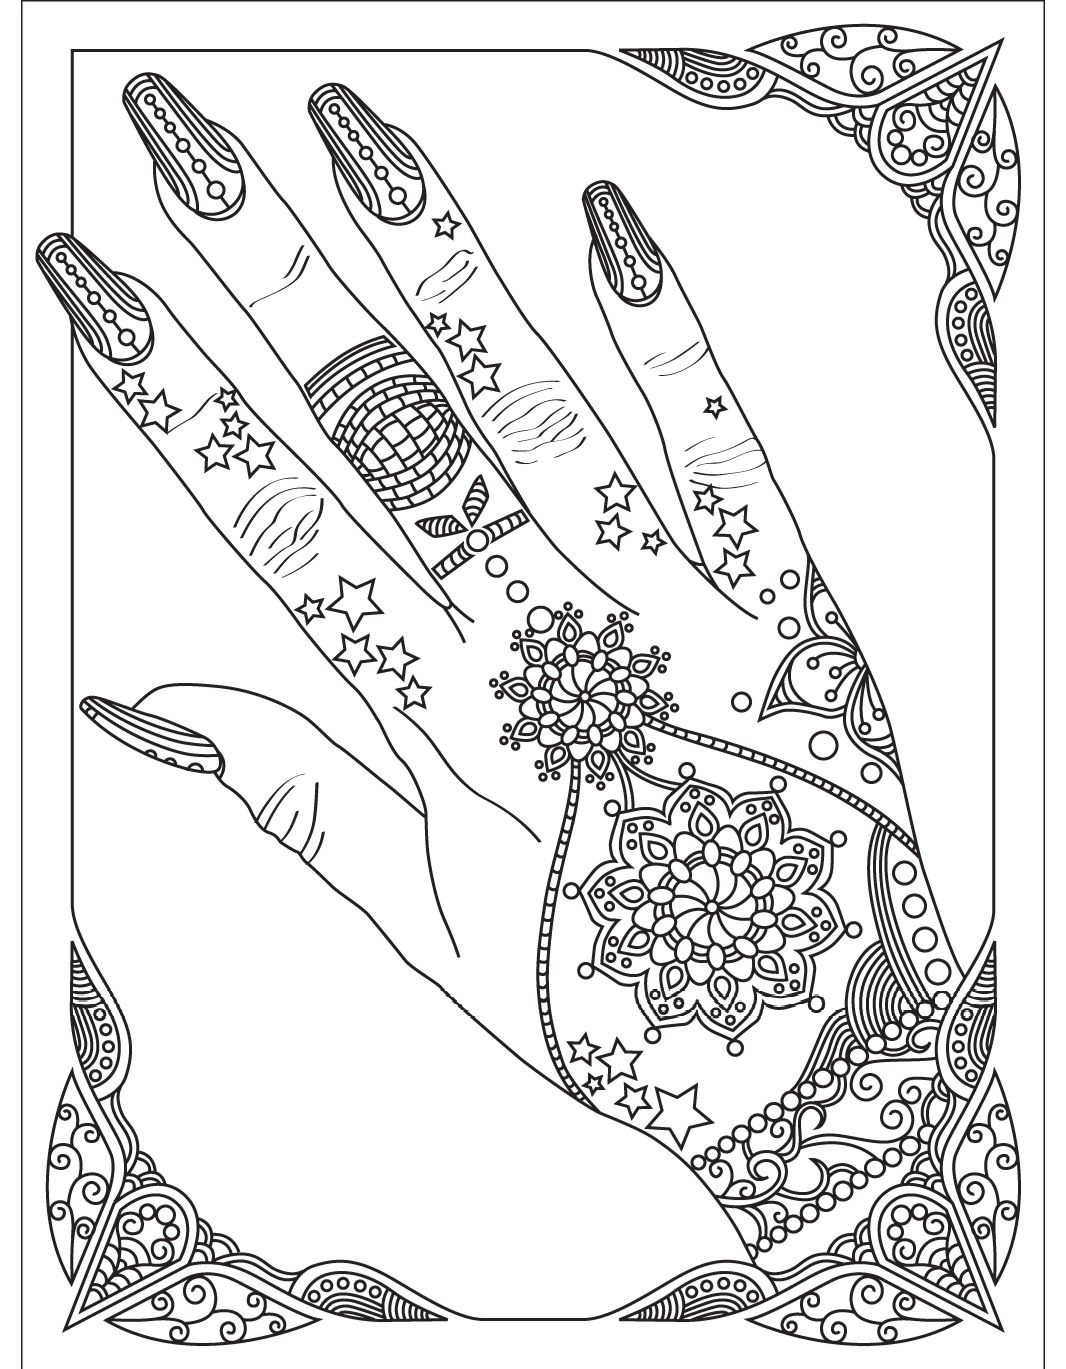 Nails Colorish Coloring Book App For Adults By Goodsofttech Coloring Books Coloring Book App Cool Coloring Pages